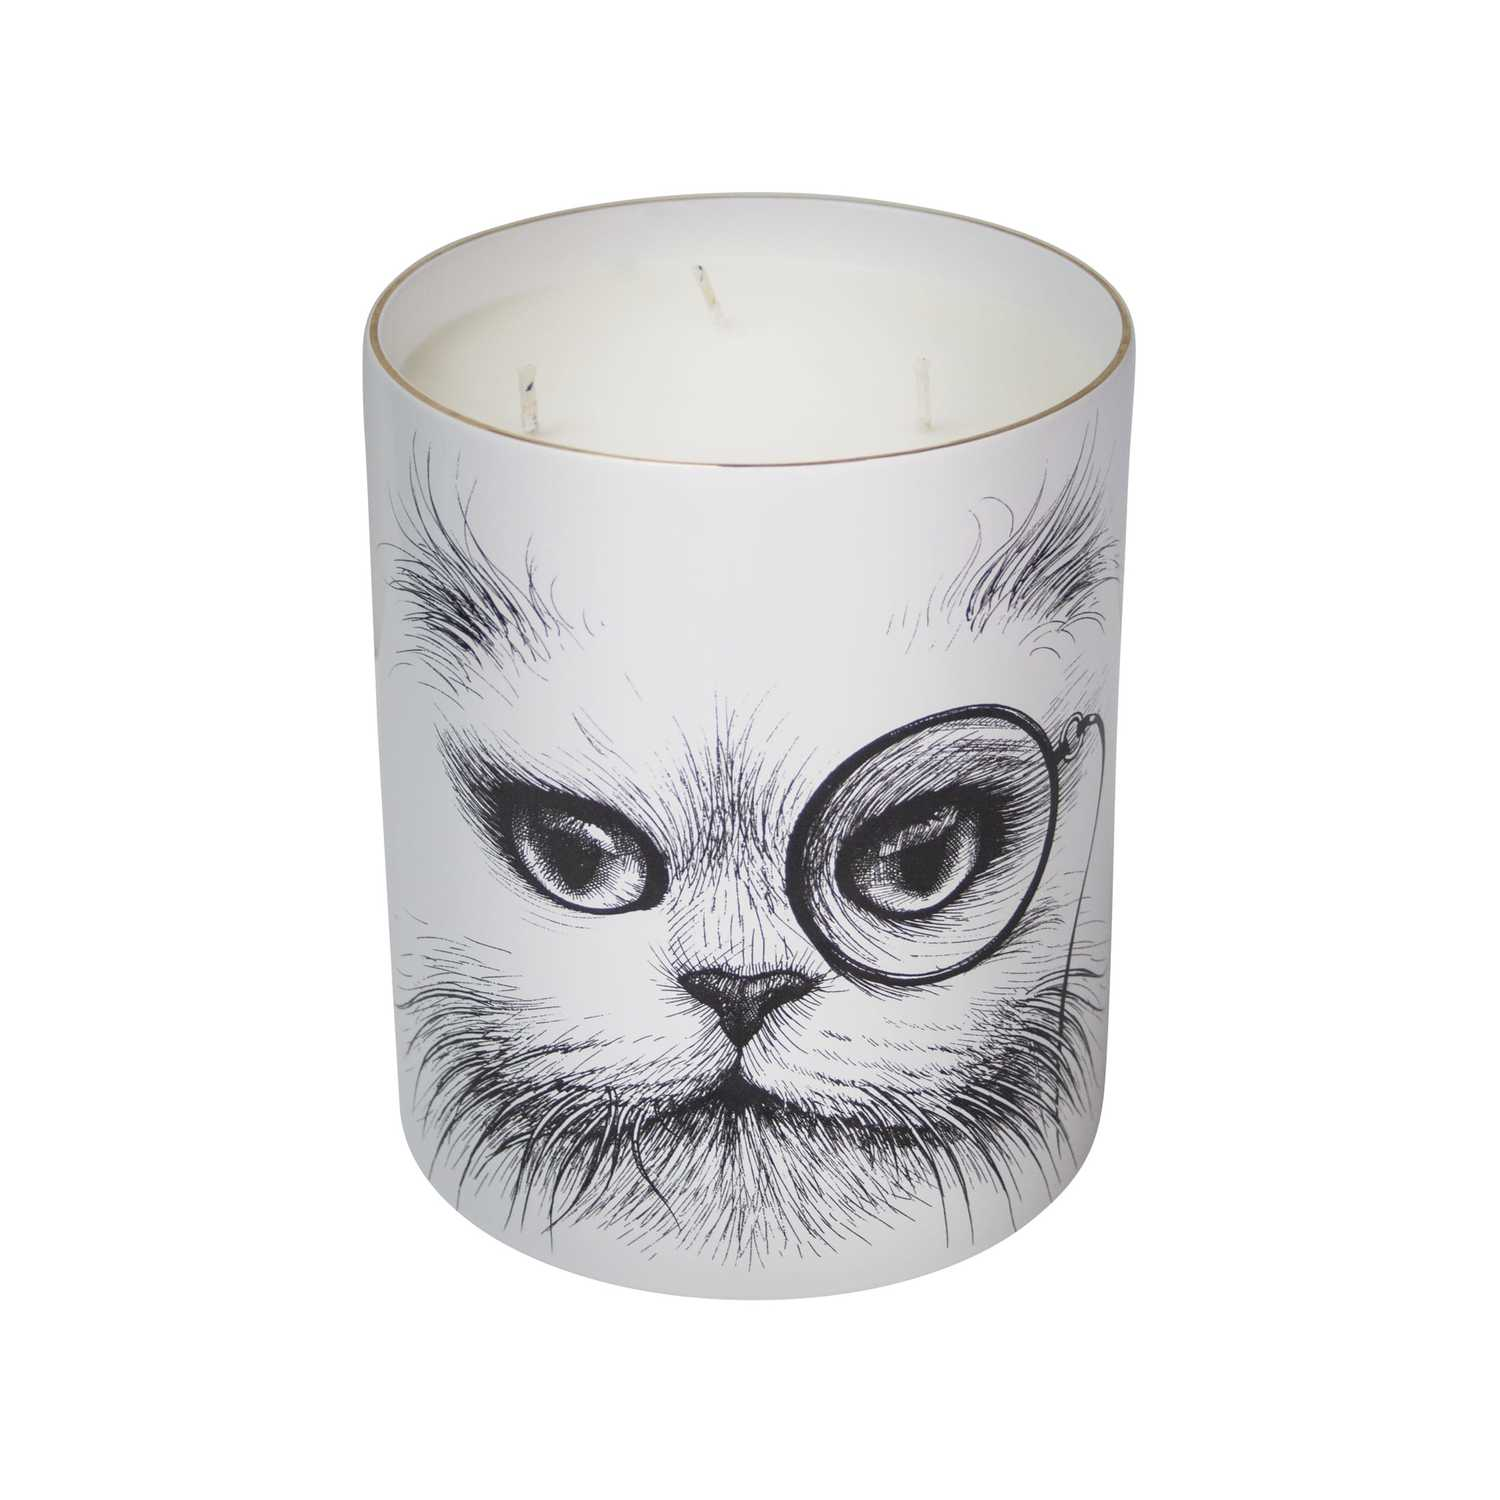 Supersize Cat Monocle / Cat No Monocle Candle-0